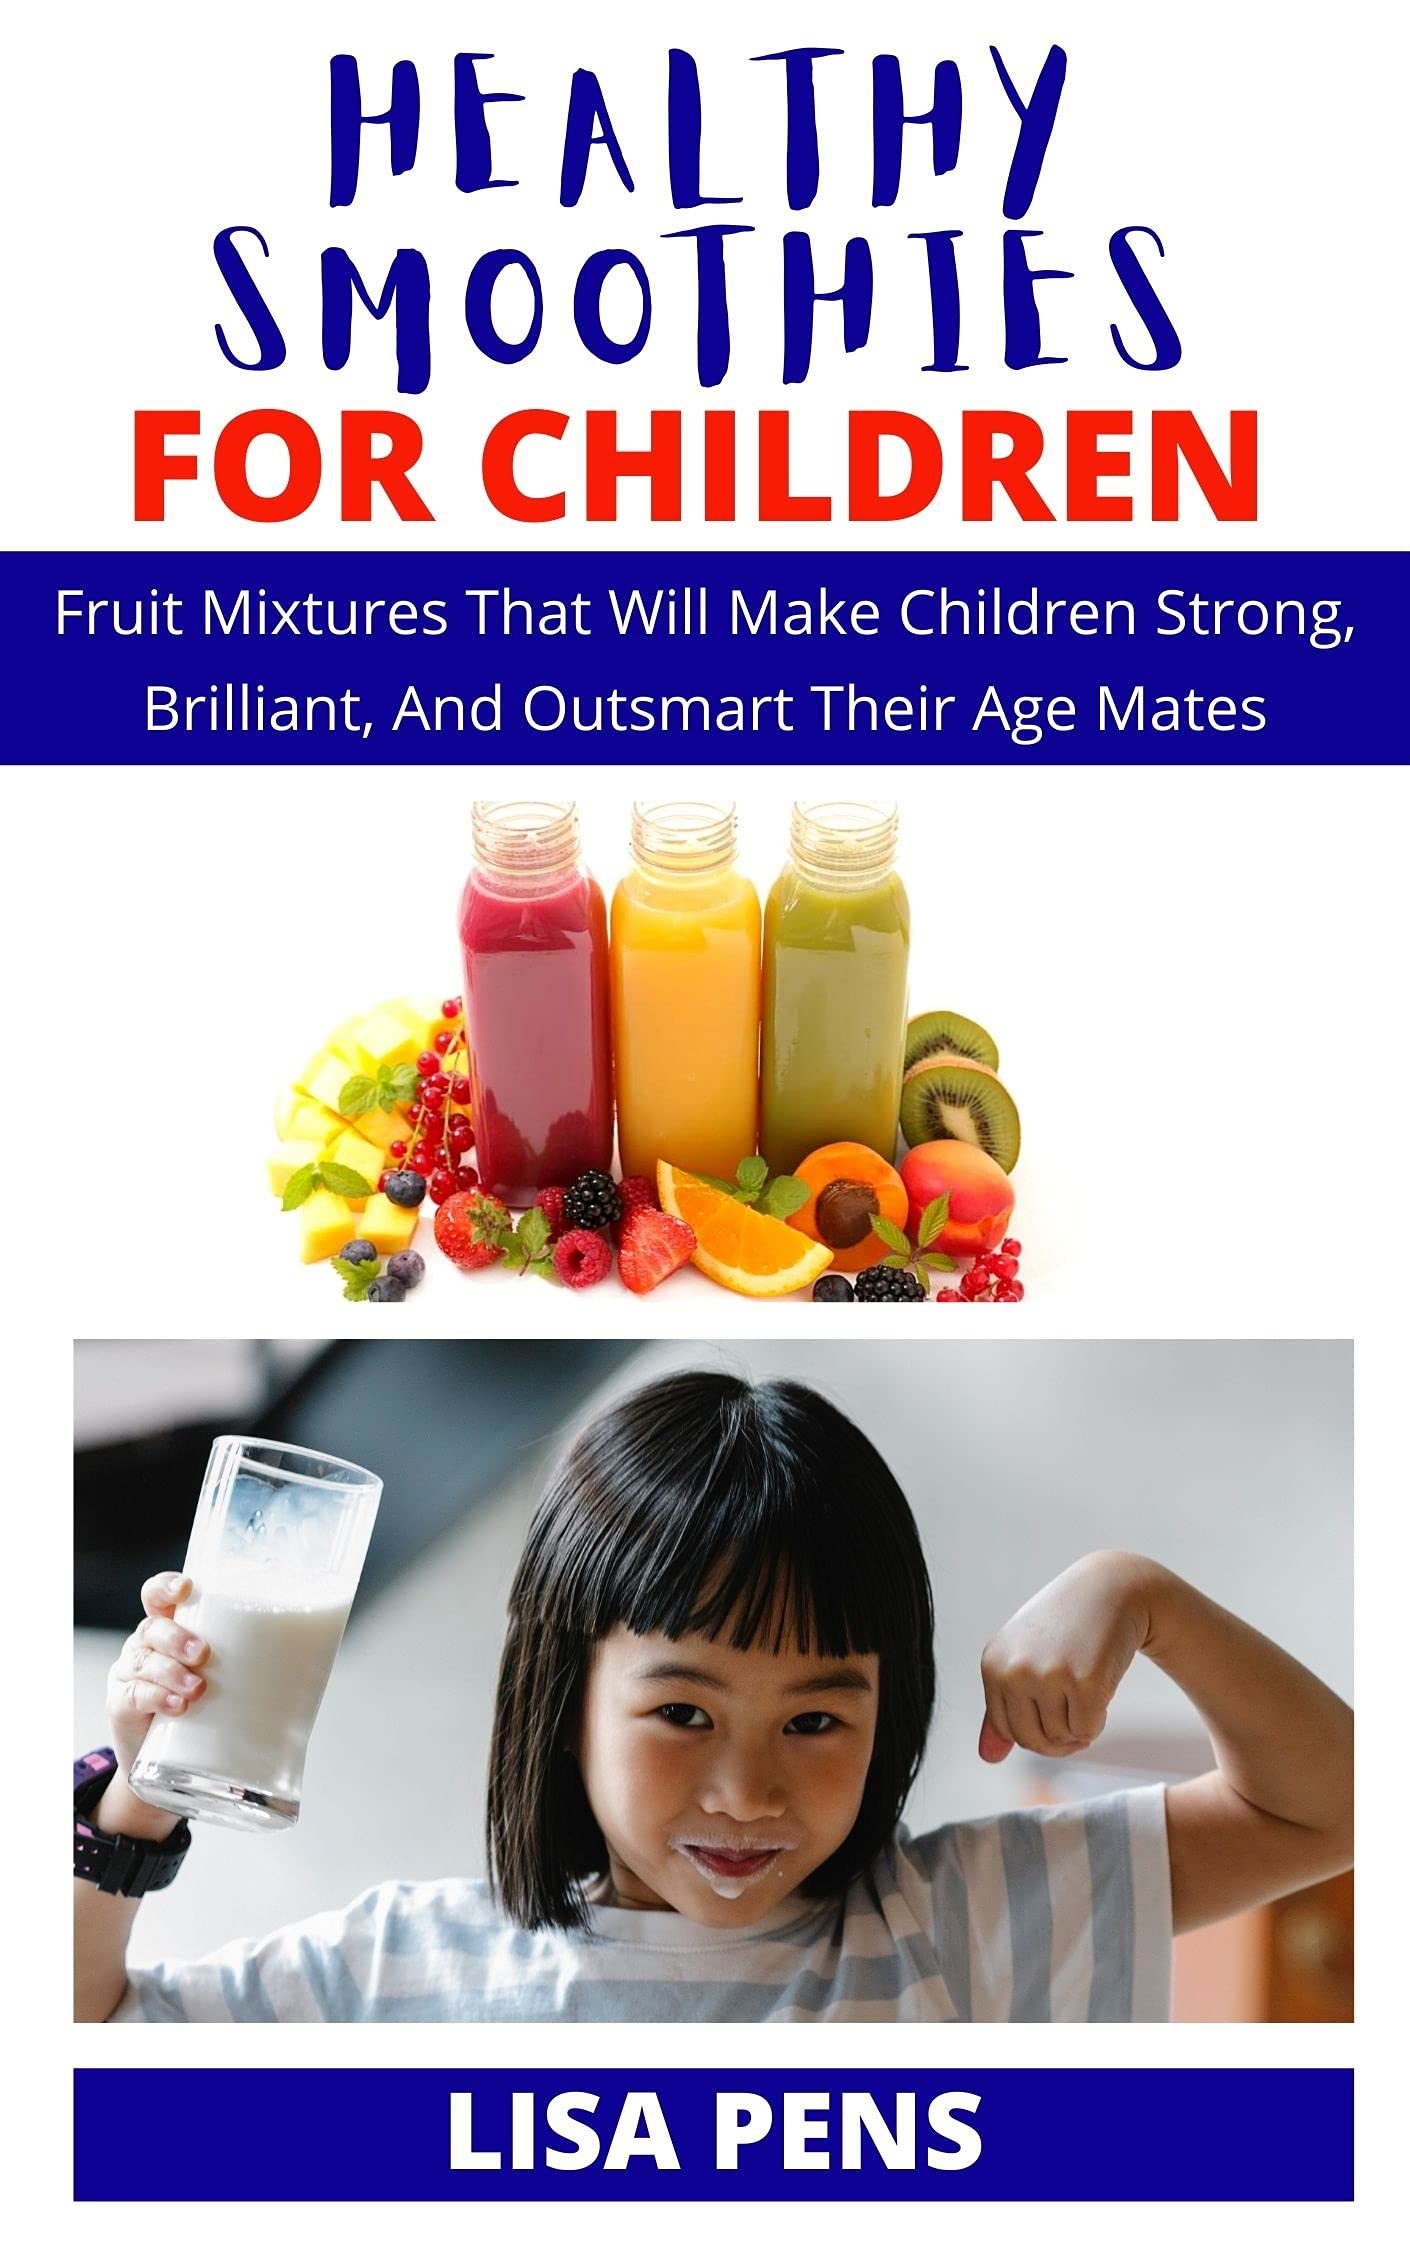 HEALTHY SMOOTHIES FOR CHILDREN: Healthy Nutritious Smoothies For Children, Fruit Mixtures That Will Make Them Brilliant And Outsmart Their Age Mates